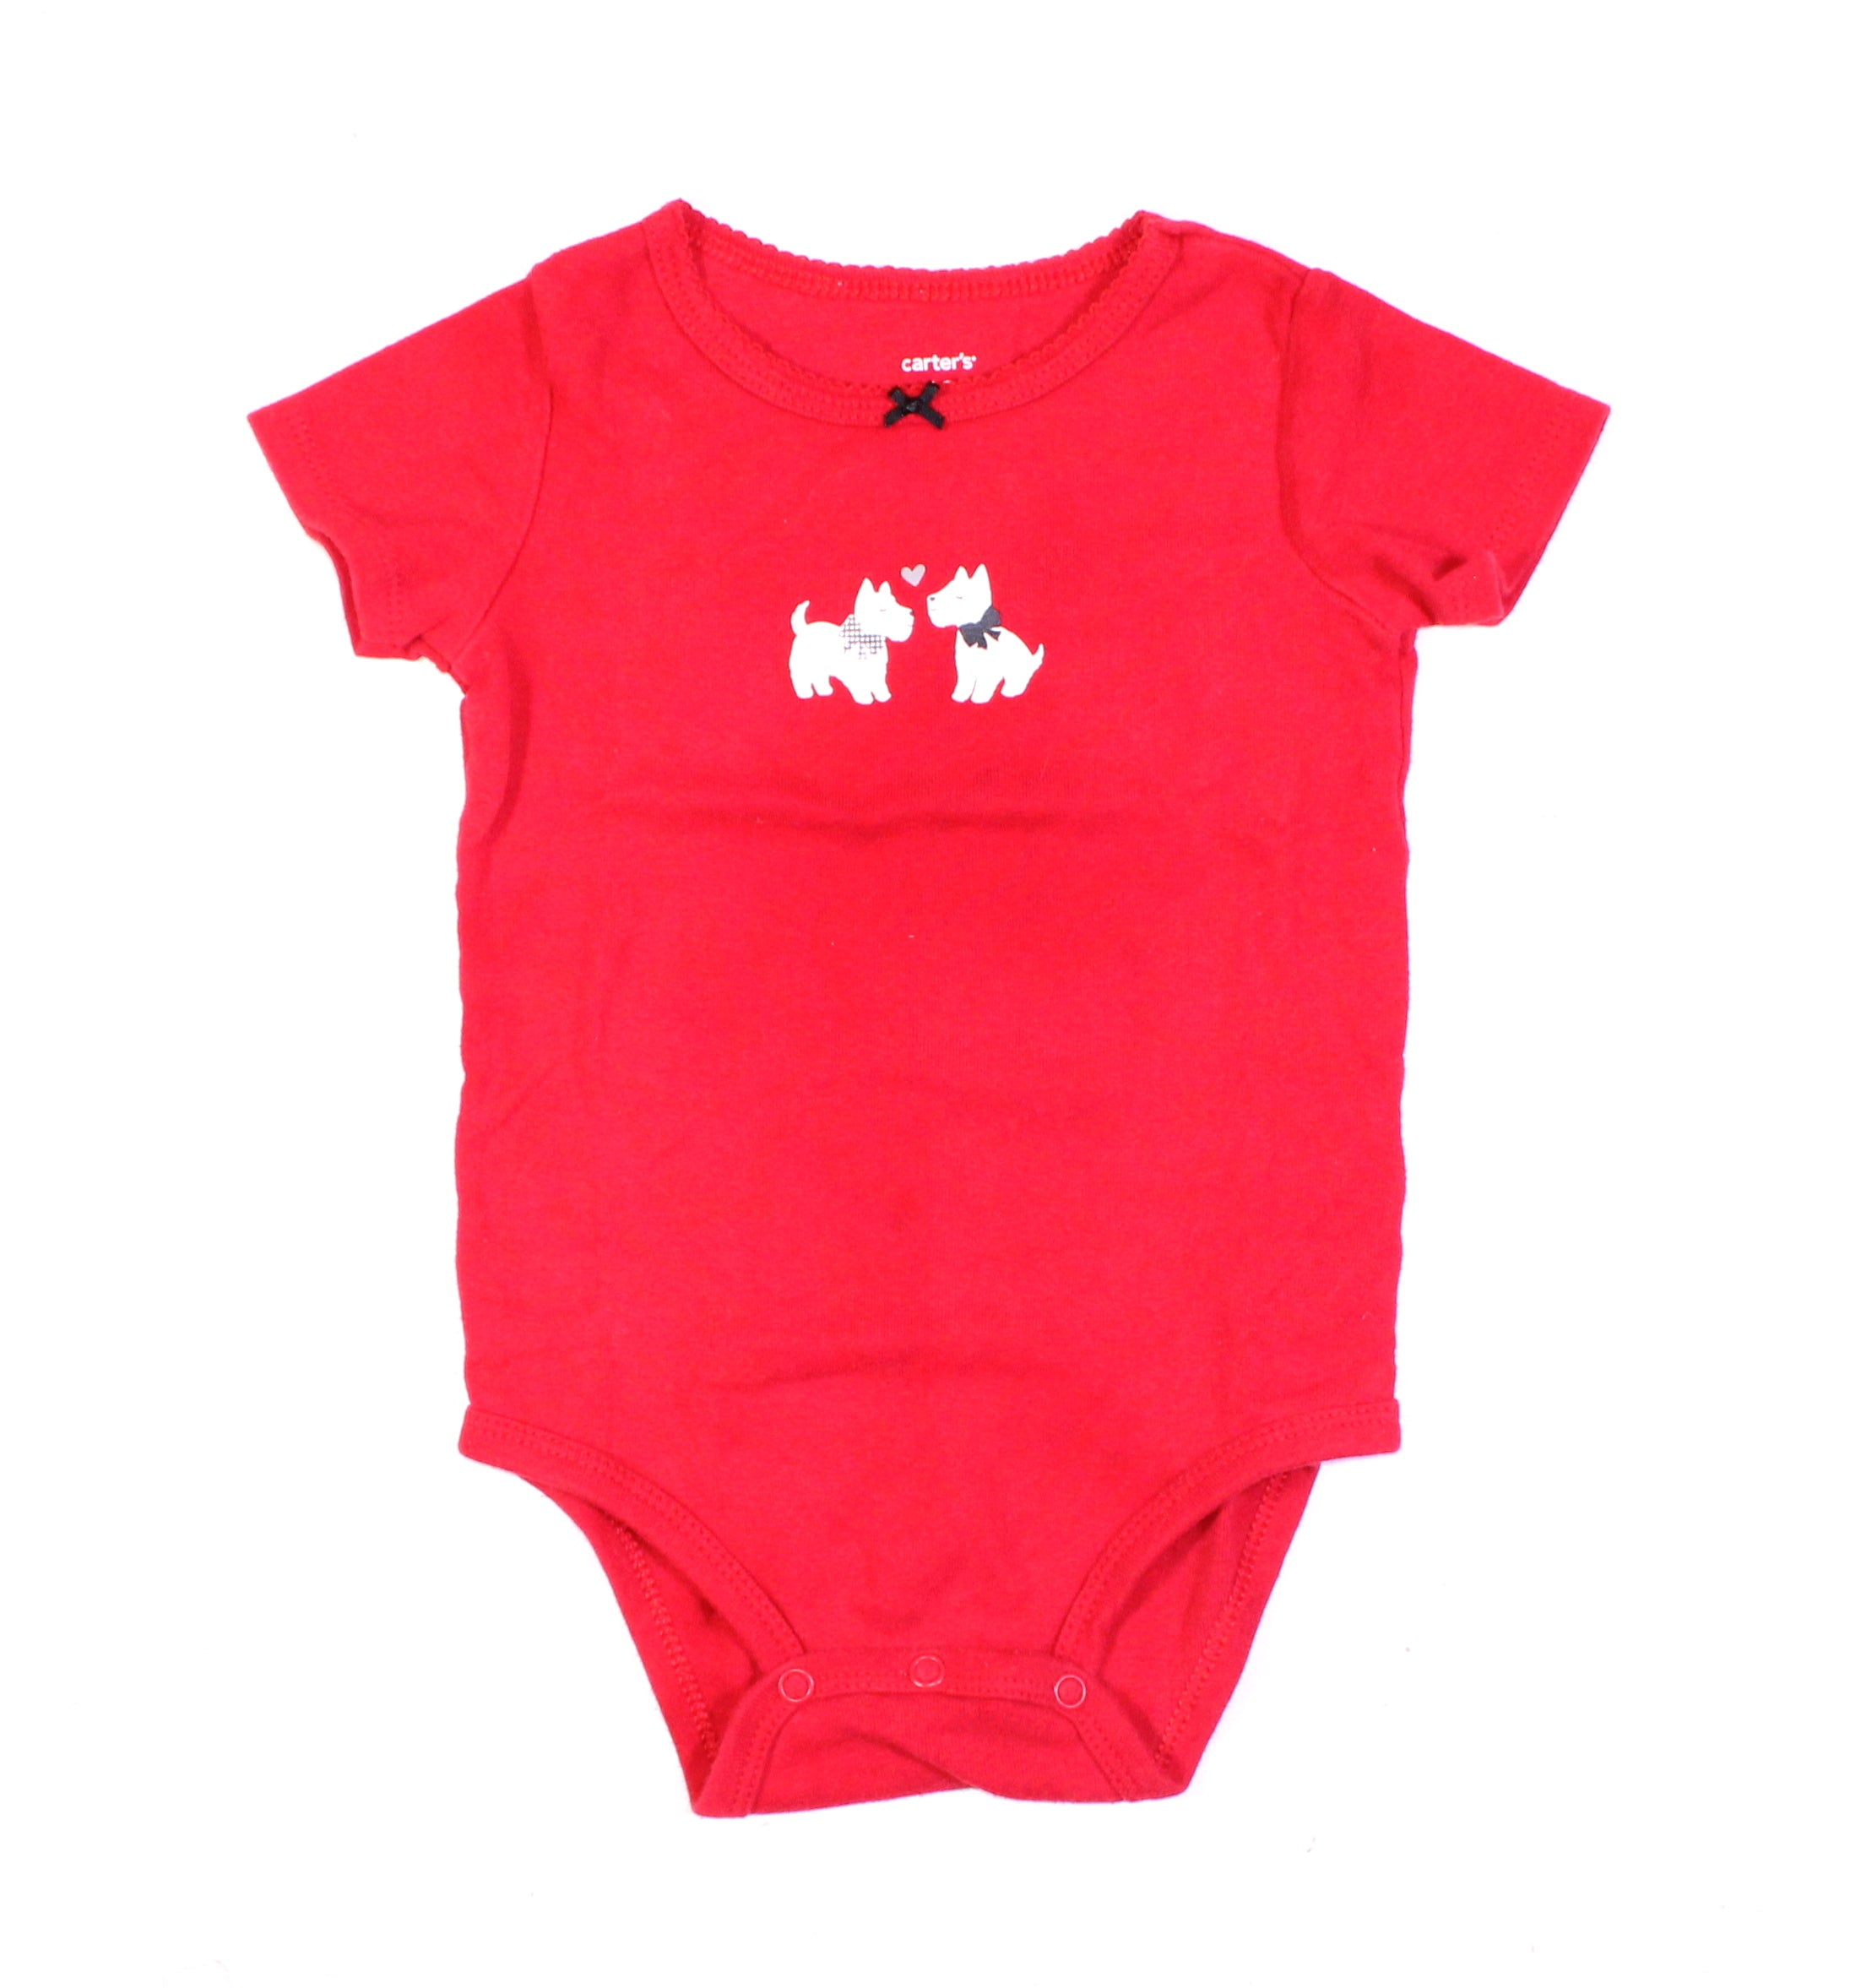 CARTERS RED ONESIE 18M EUC